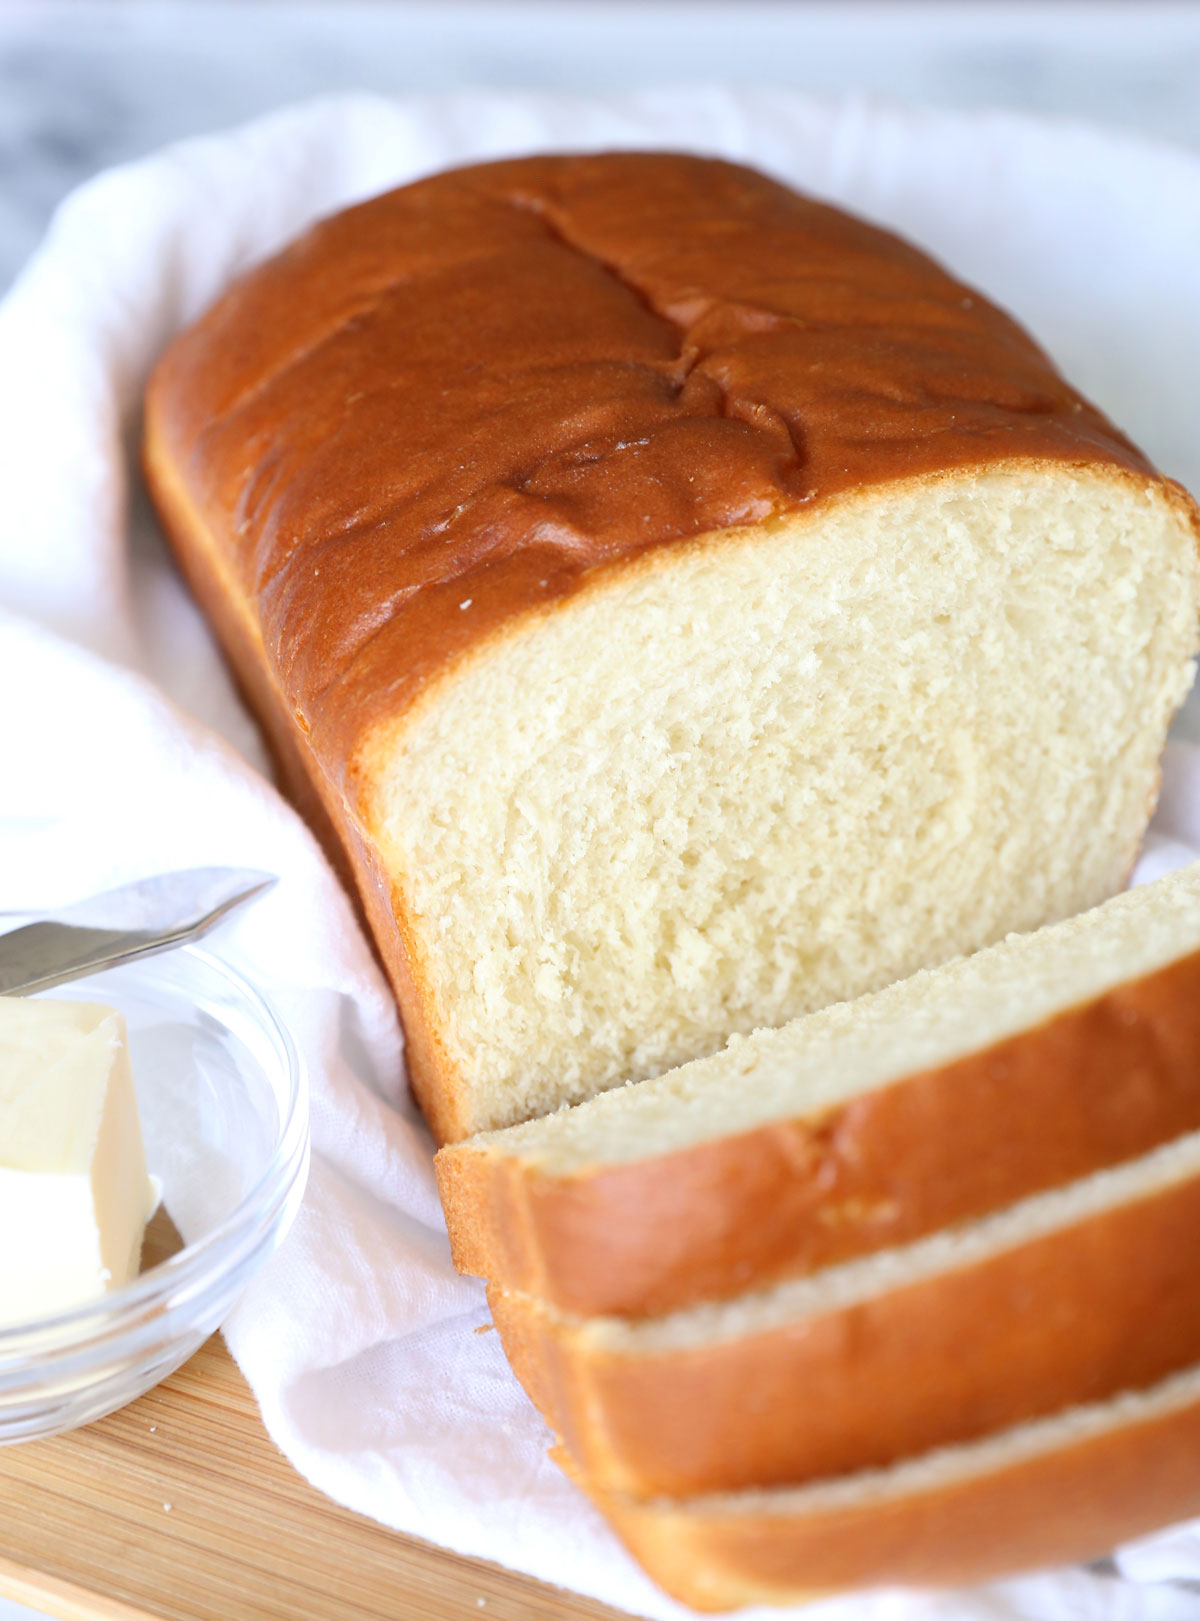 Loaf of homemade white bread